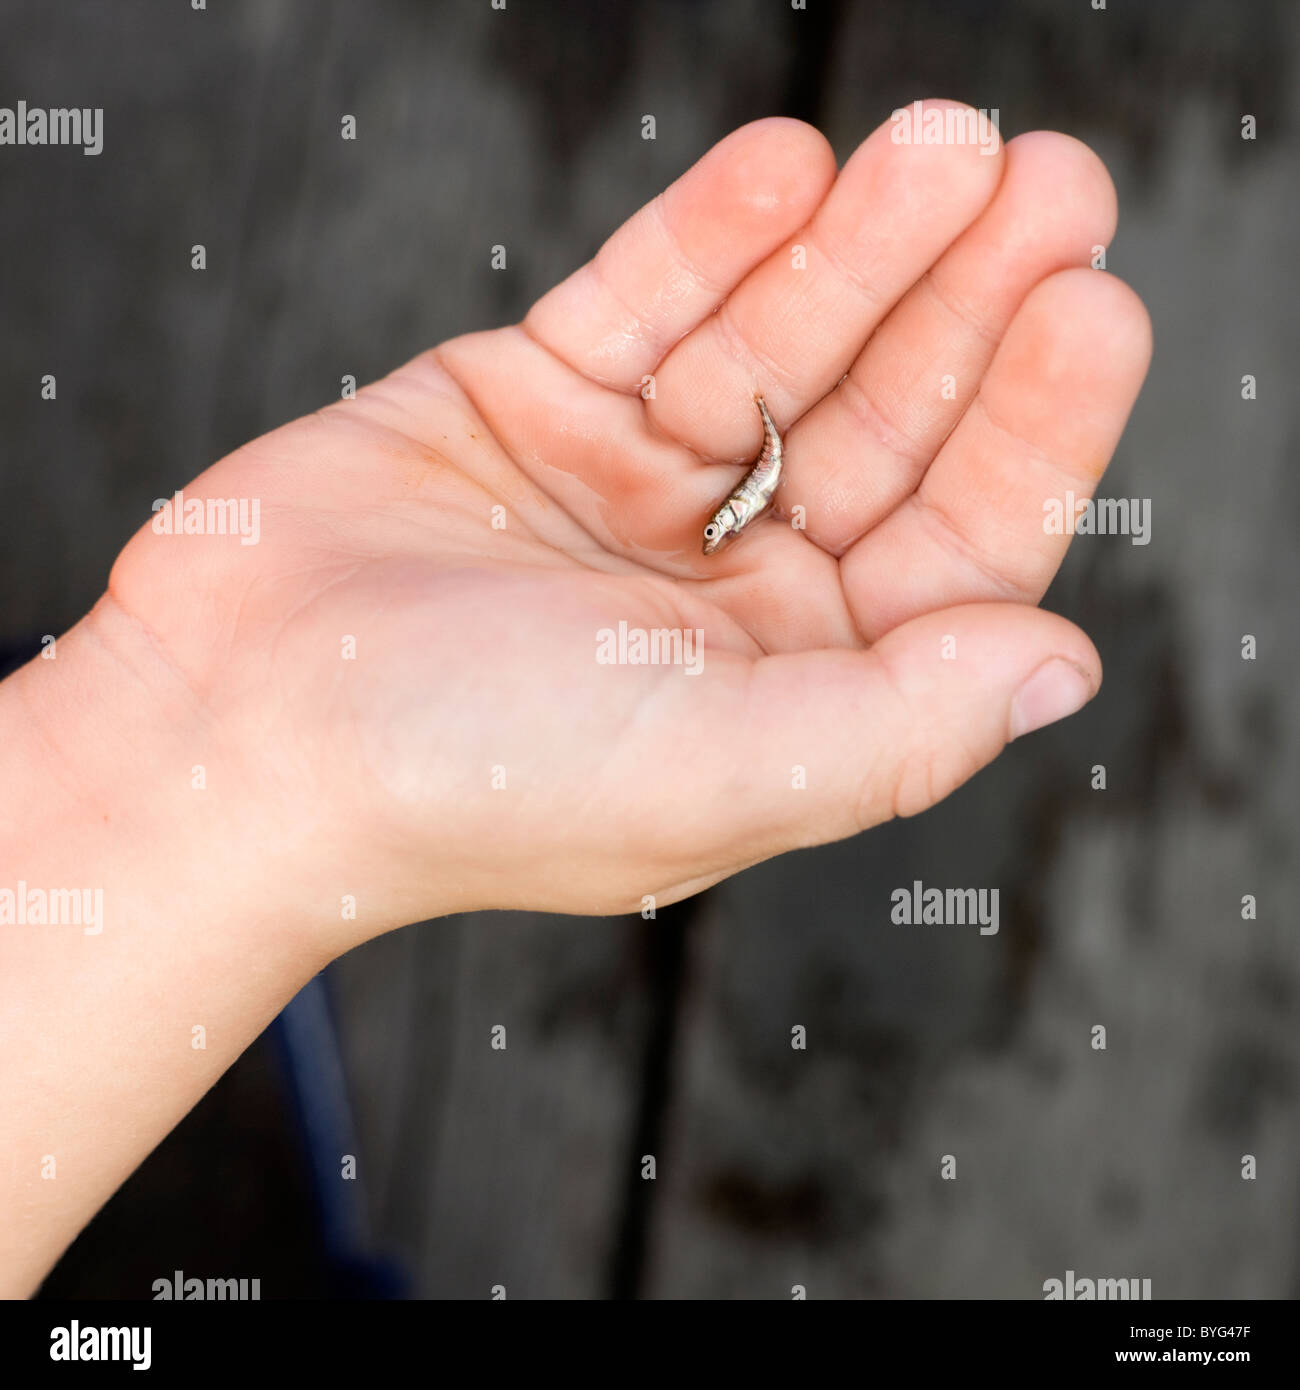 Hand holding minute fish - Stock Image